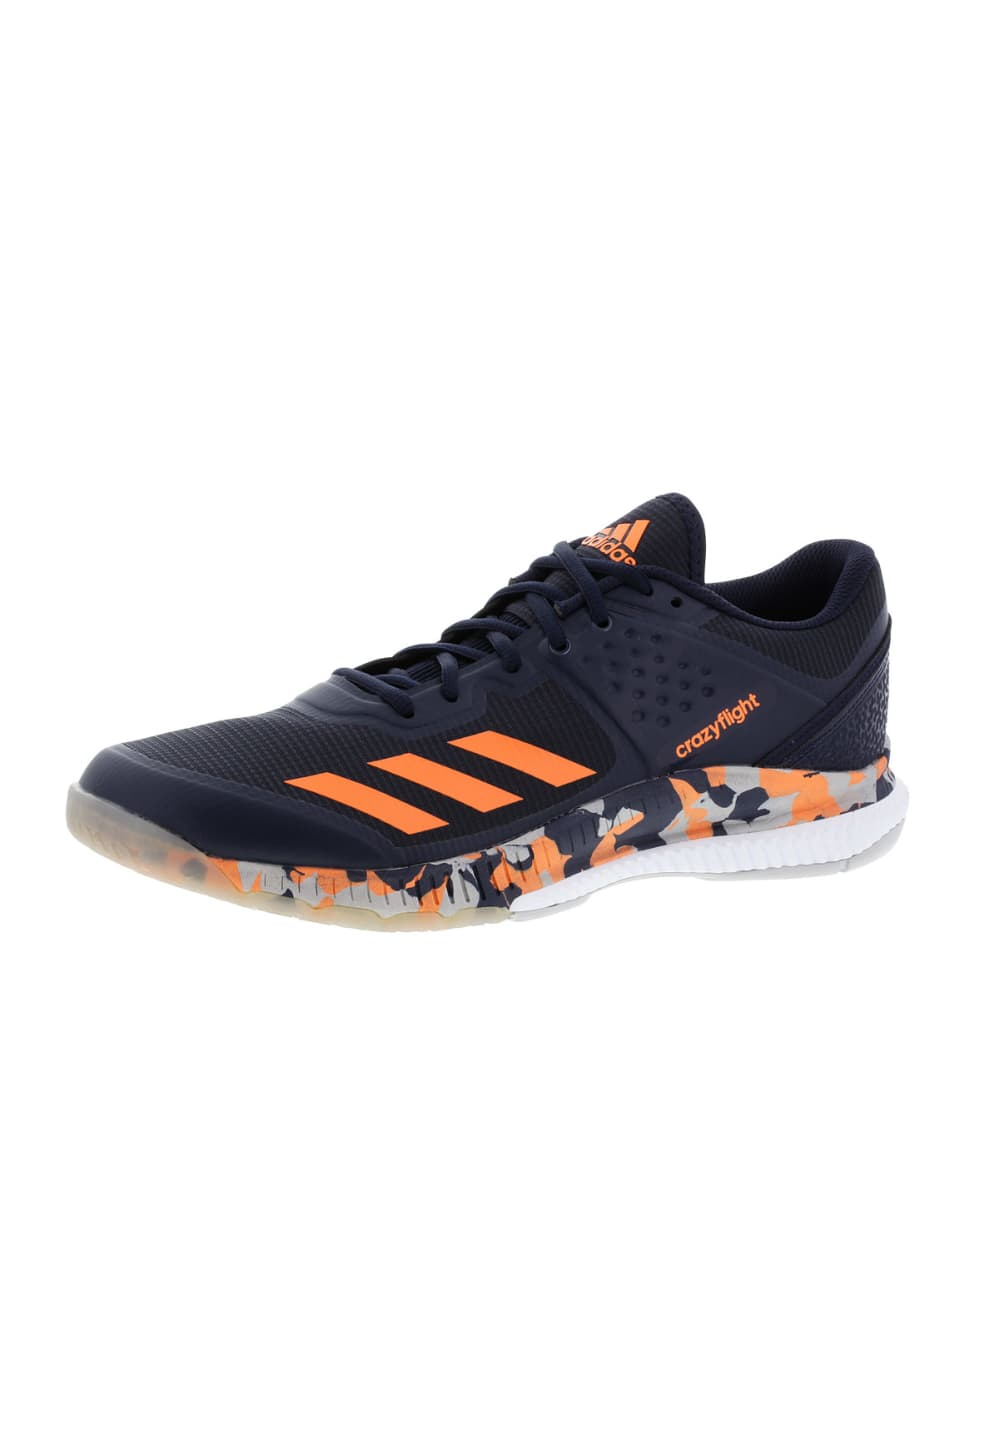 d81066f78 adidas Crazyflight Bounce - Volleyball shoes for Men - Multicolor ...